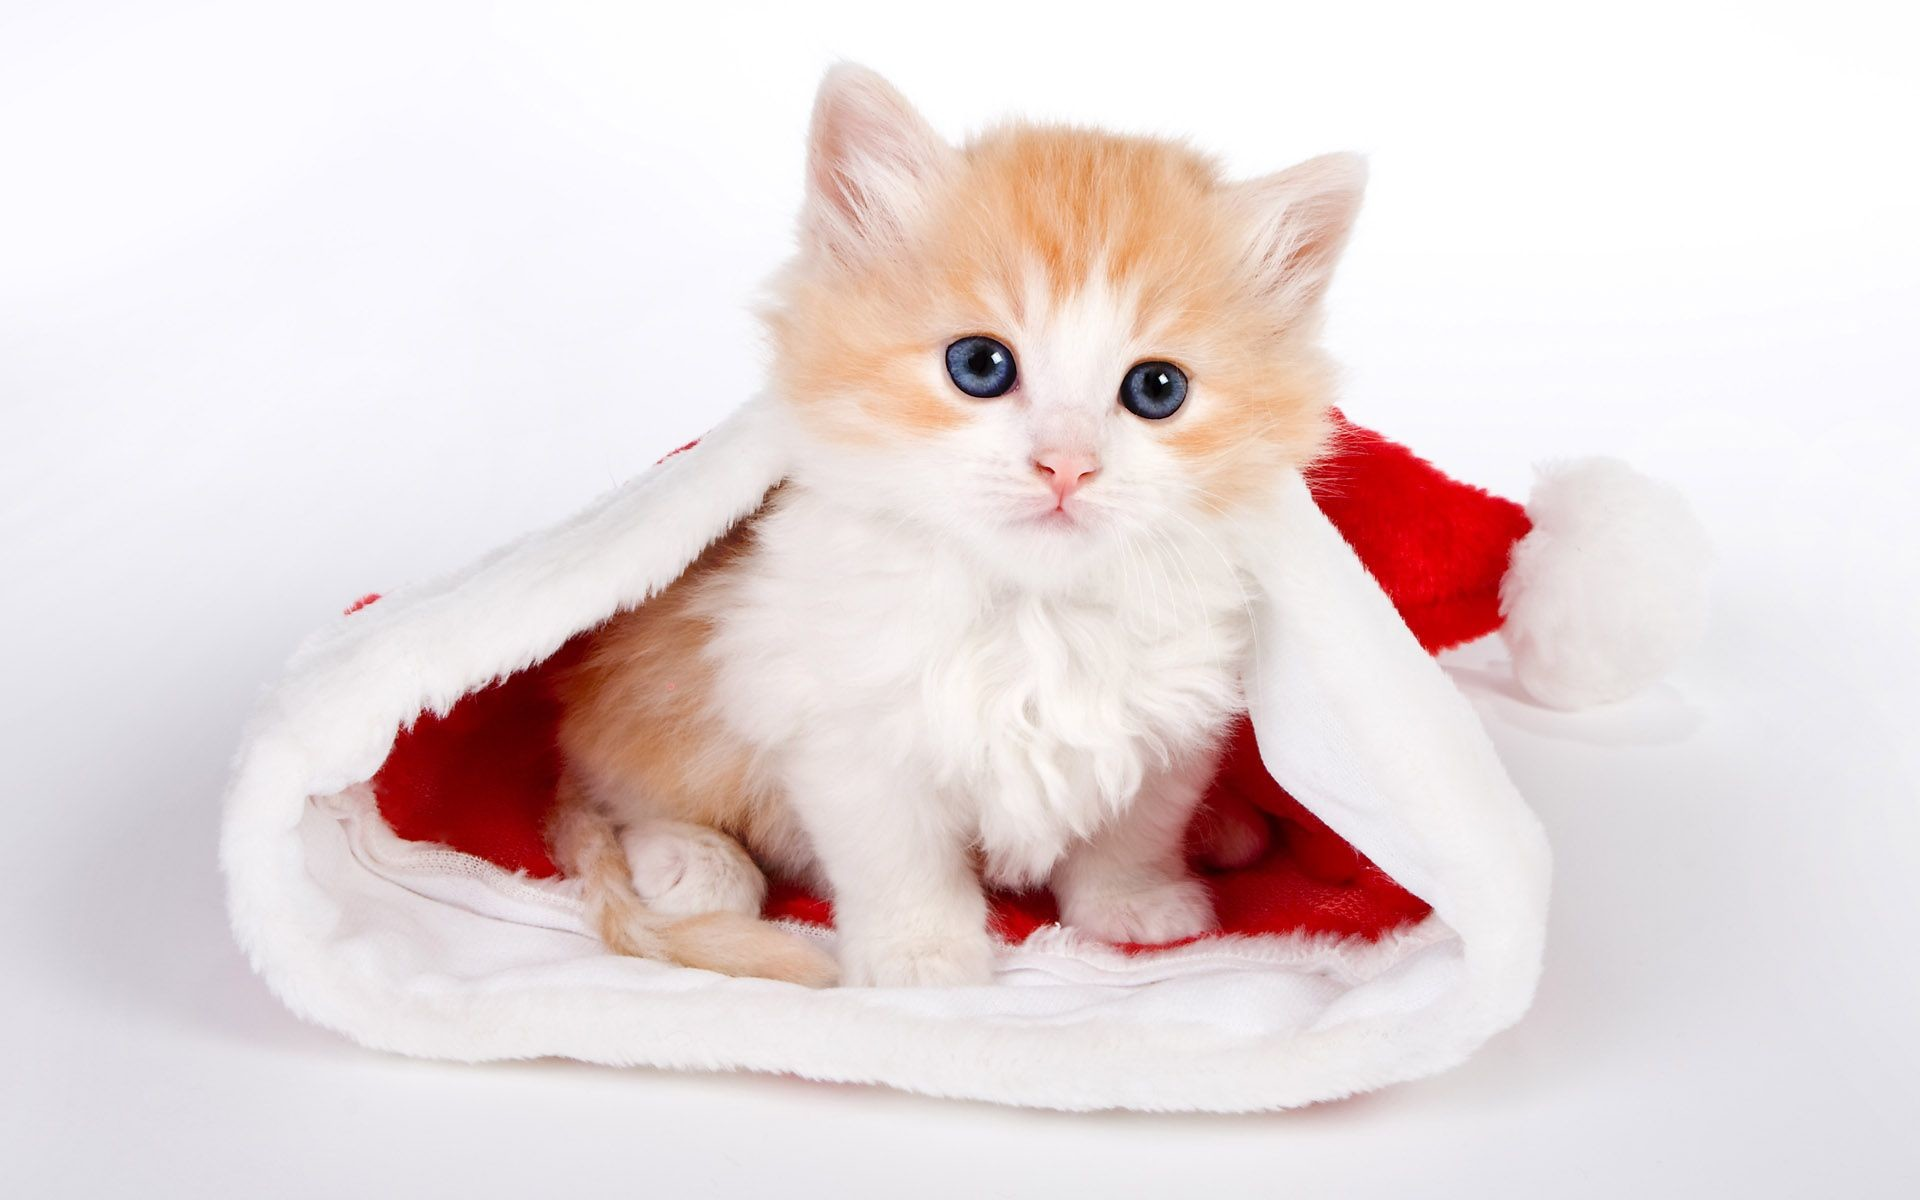 Hd Cat Wallpapers Kitten Images Cute Cat Photos Claw Hairy